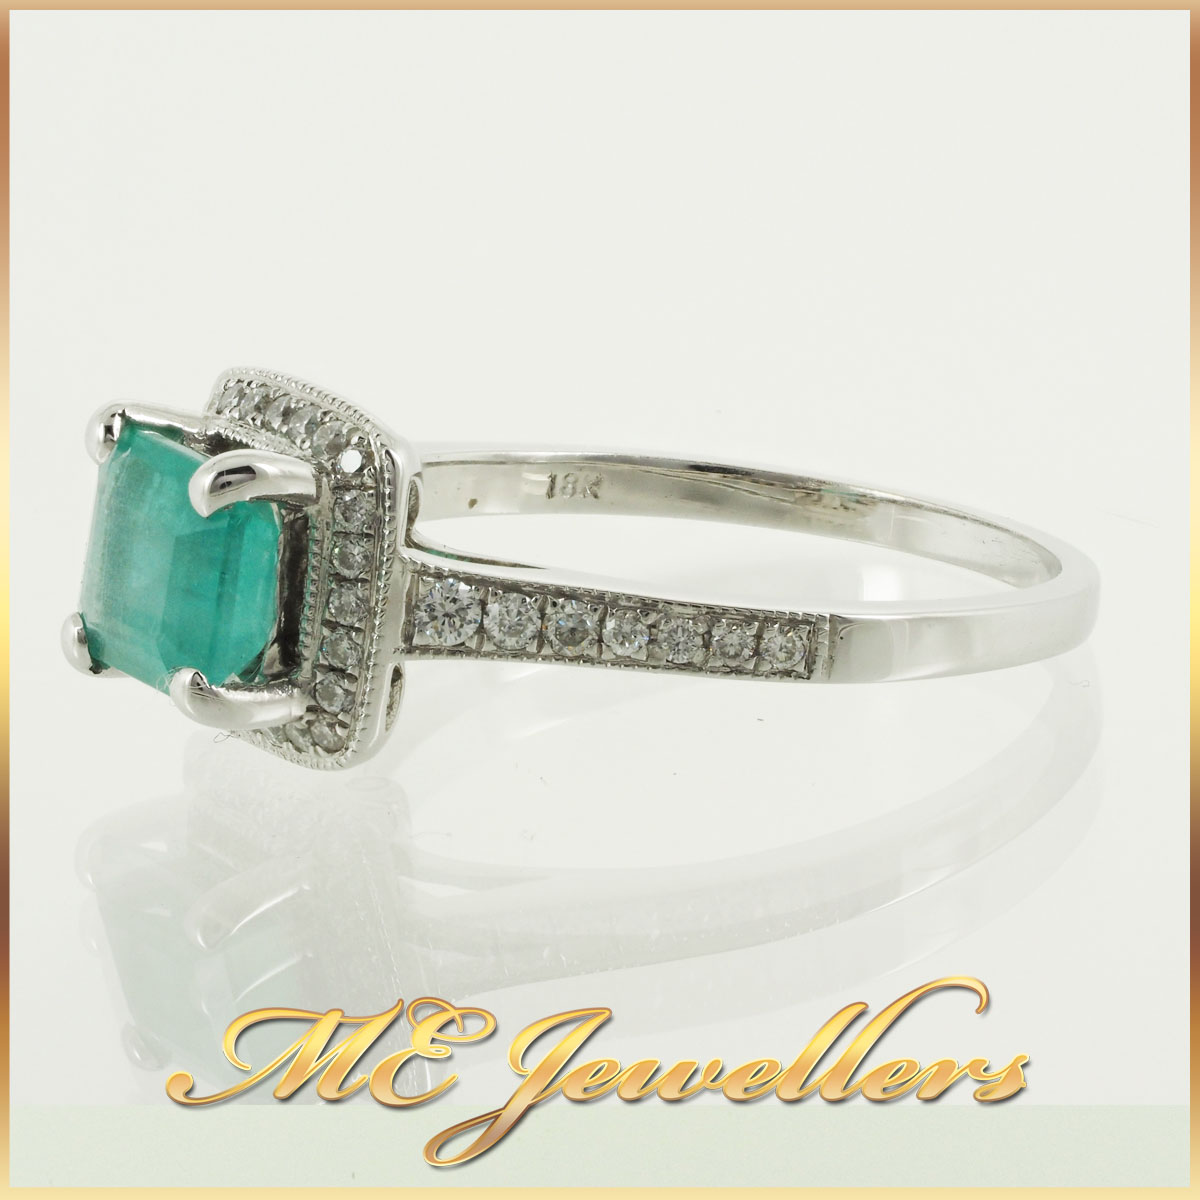 6746 natural-emerald-ring-with-diamond-18k-whg-2